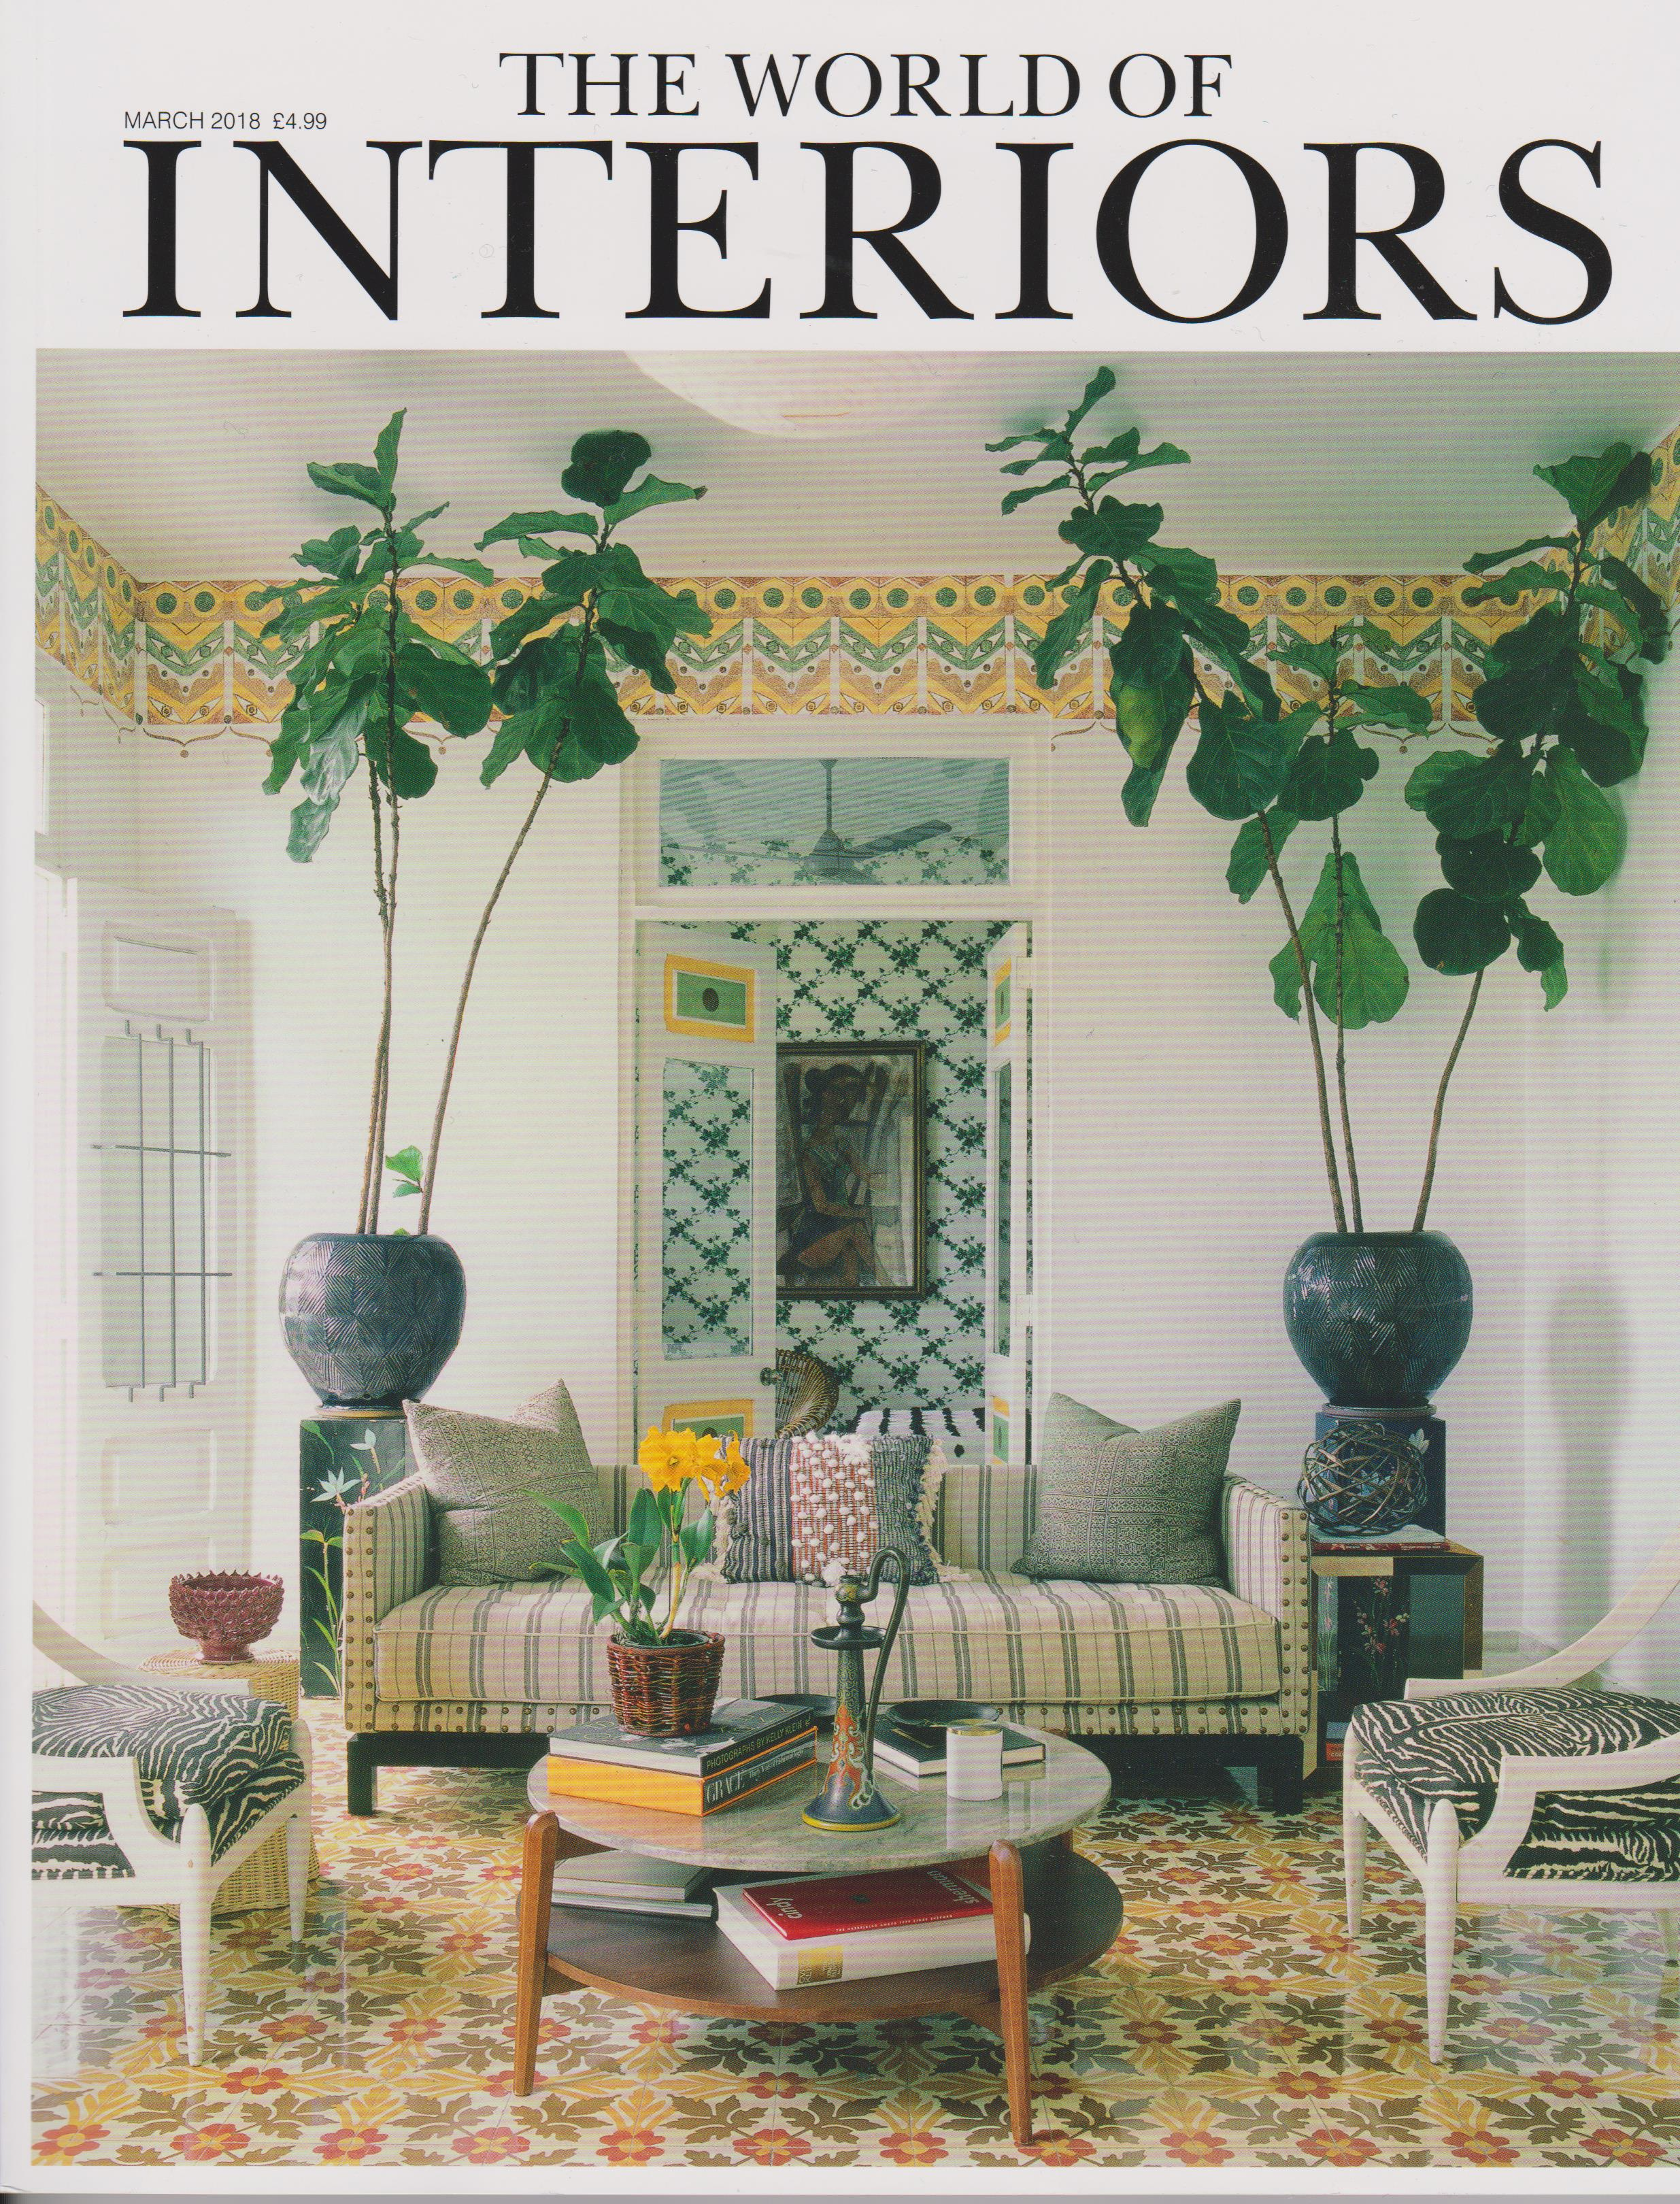 World of Interiors, March 2018